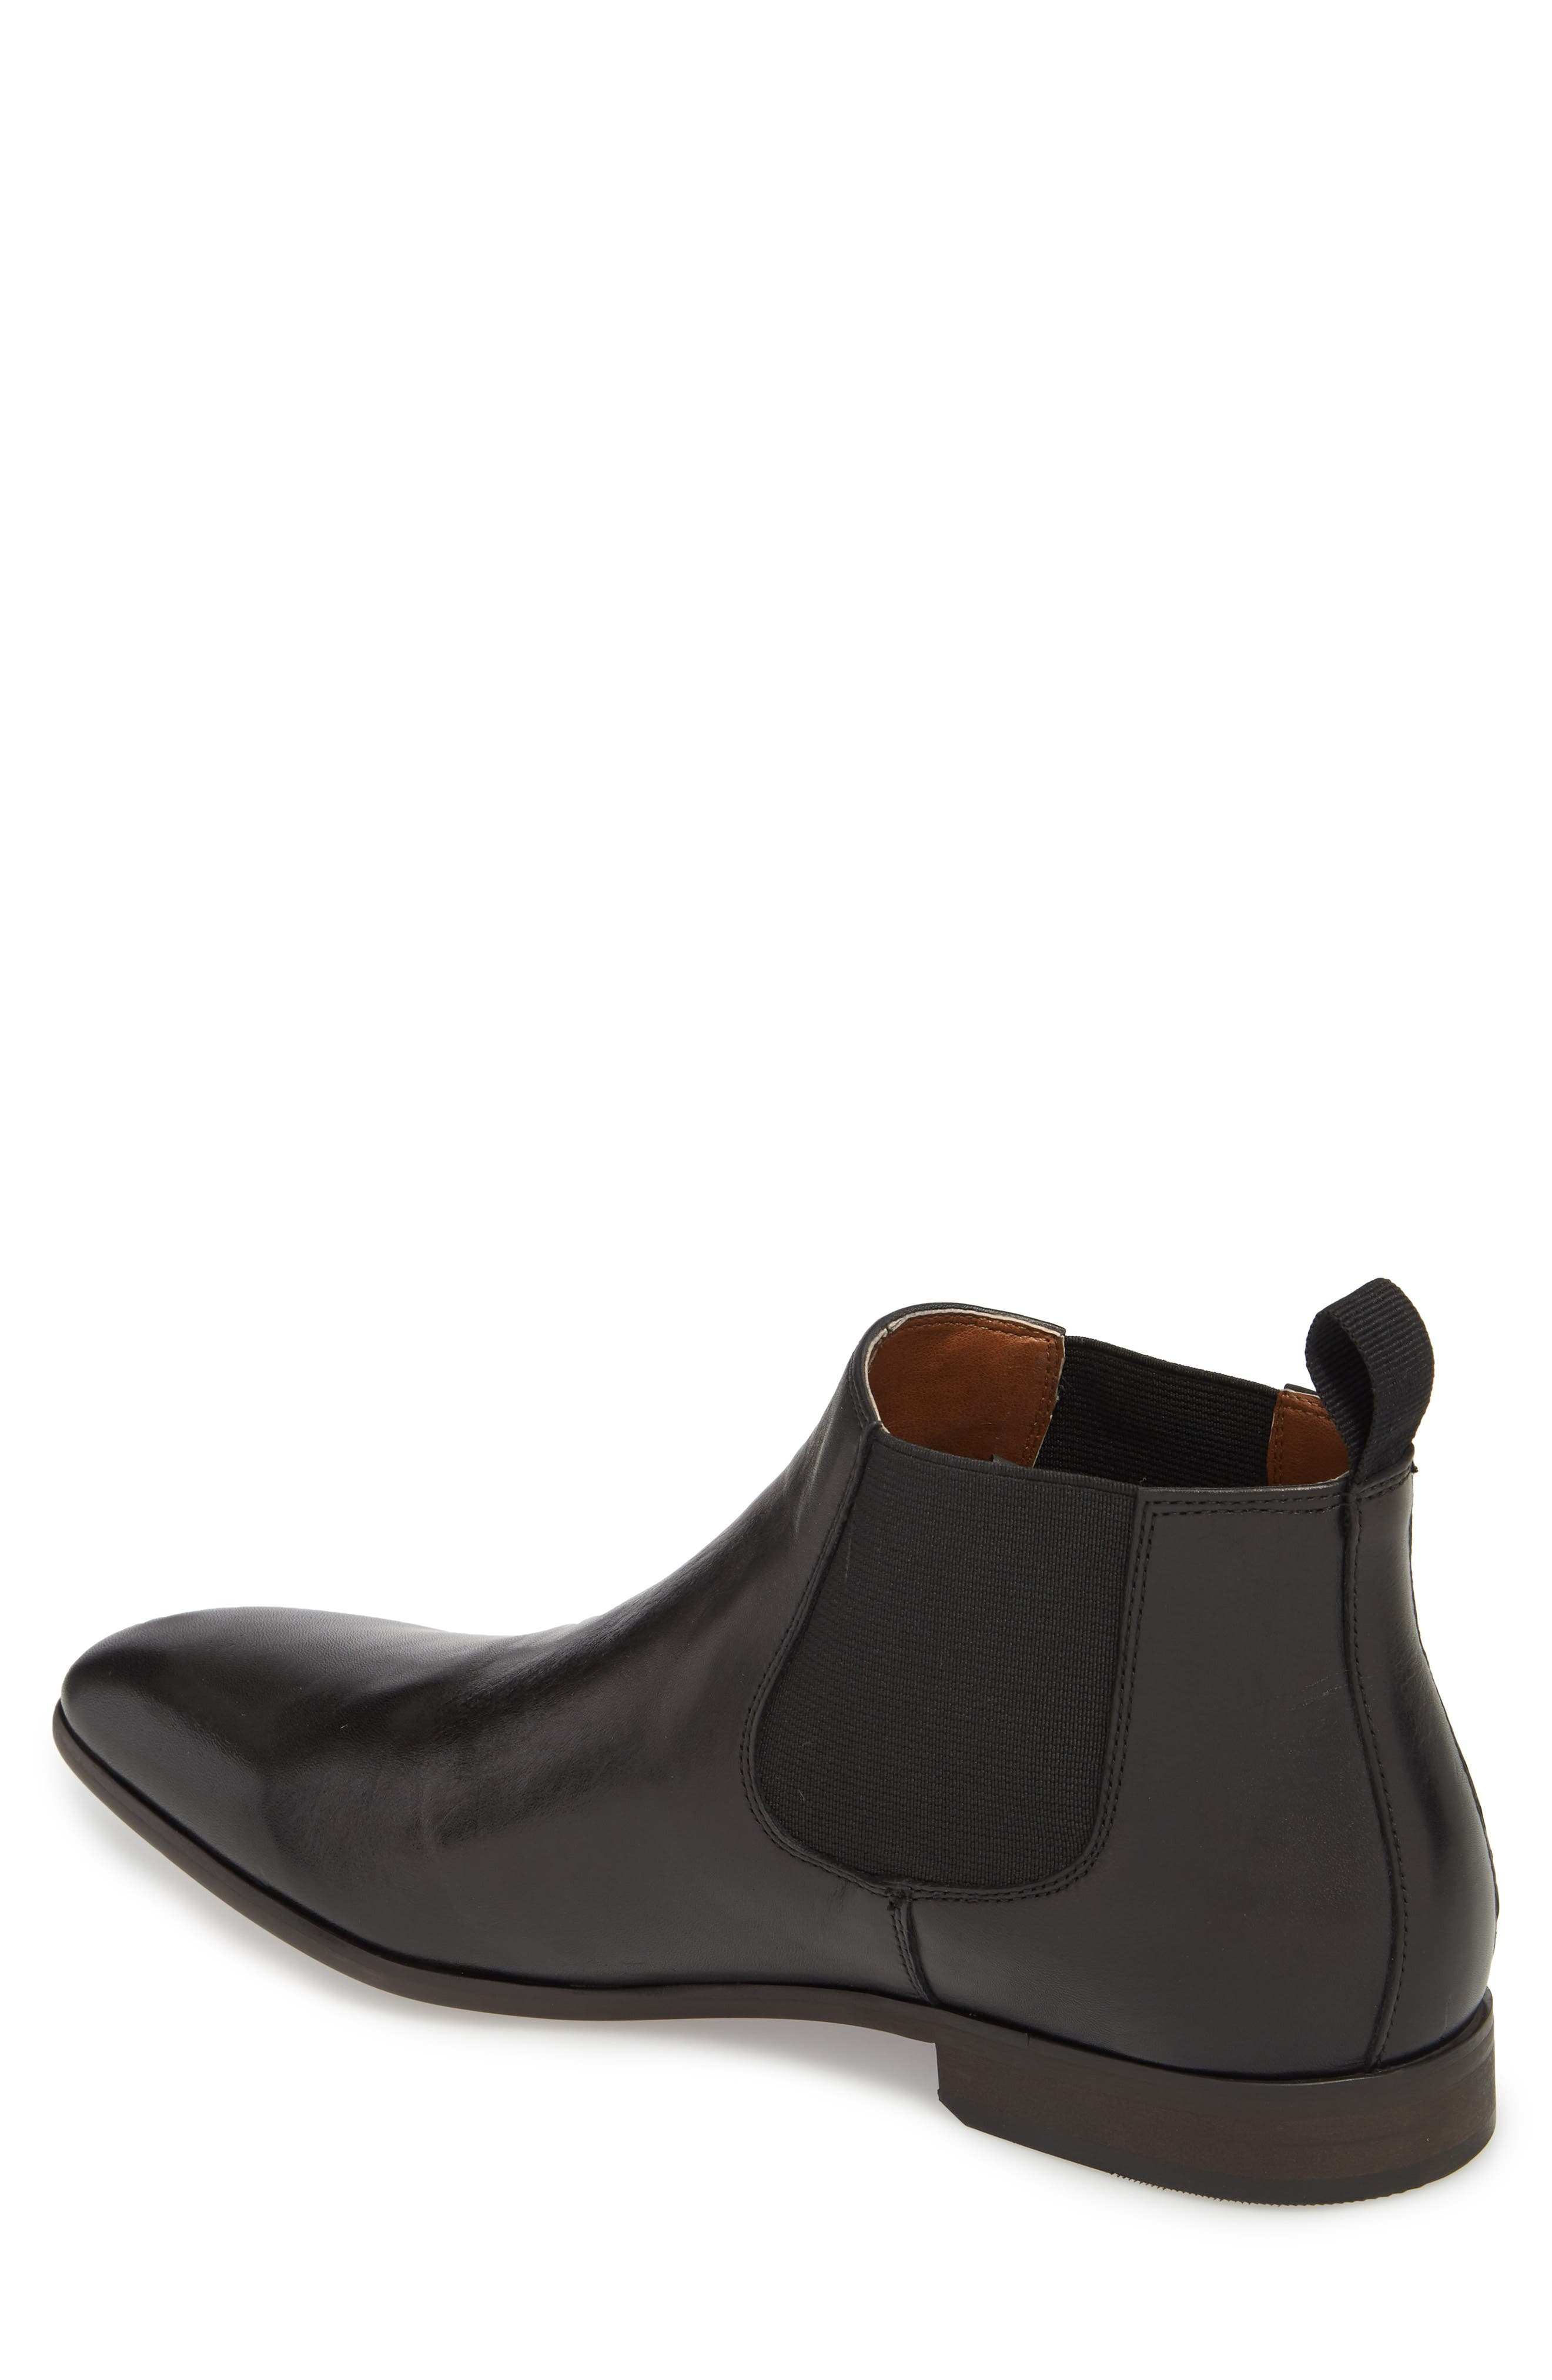 Edward Chelsea Boot,                             Alternate thumbnail 2, color,                             BLACK LEATHER